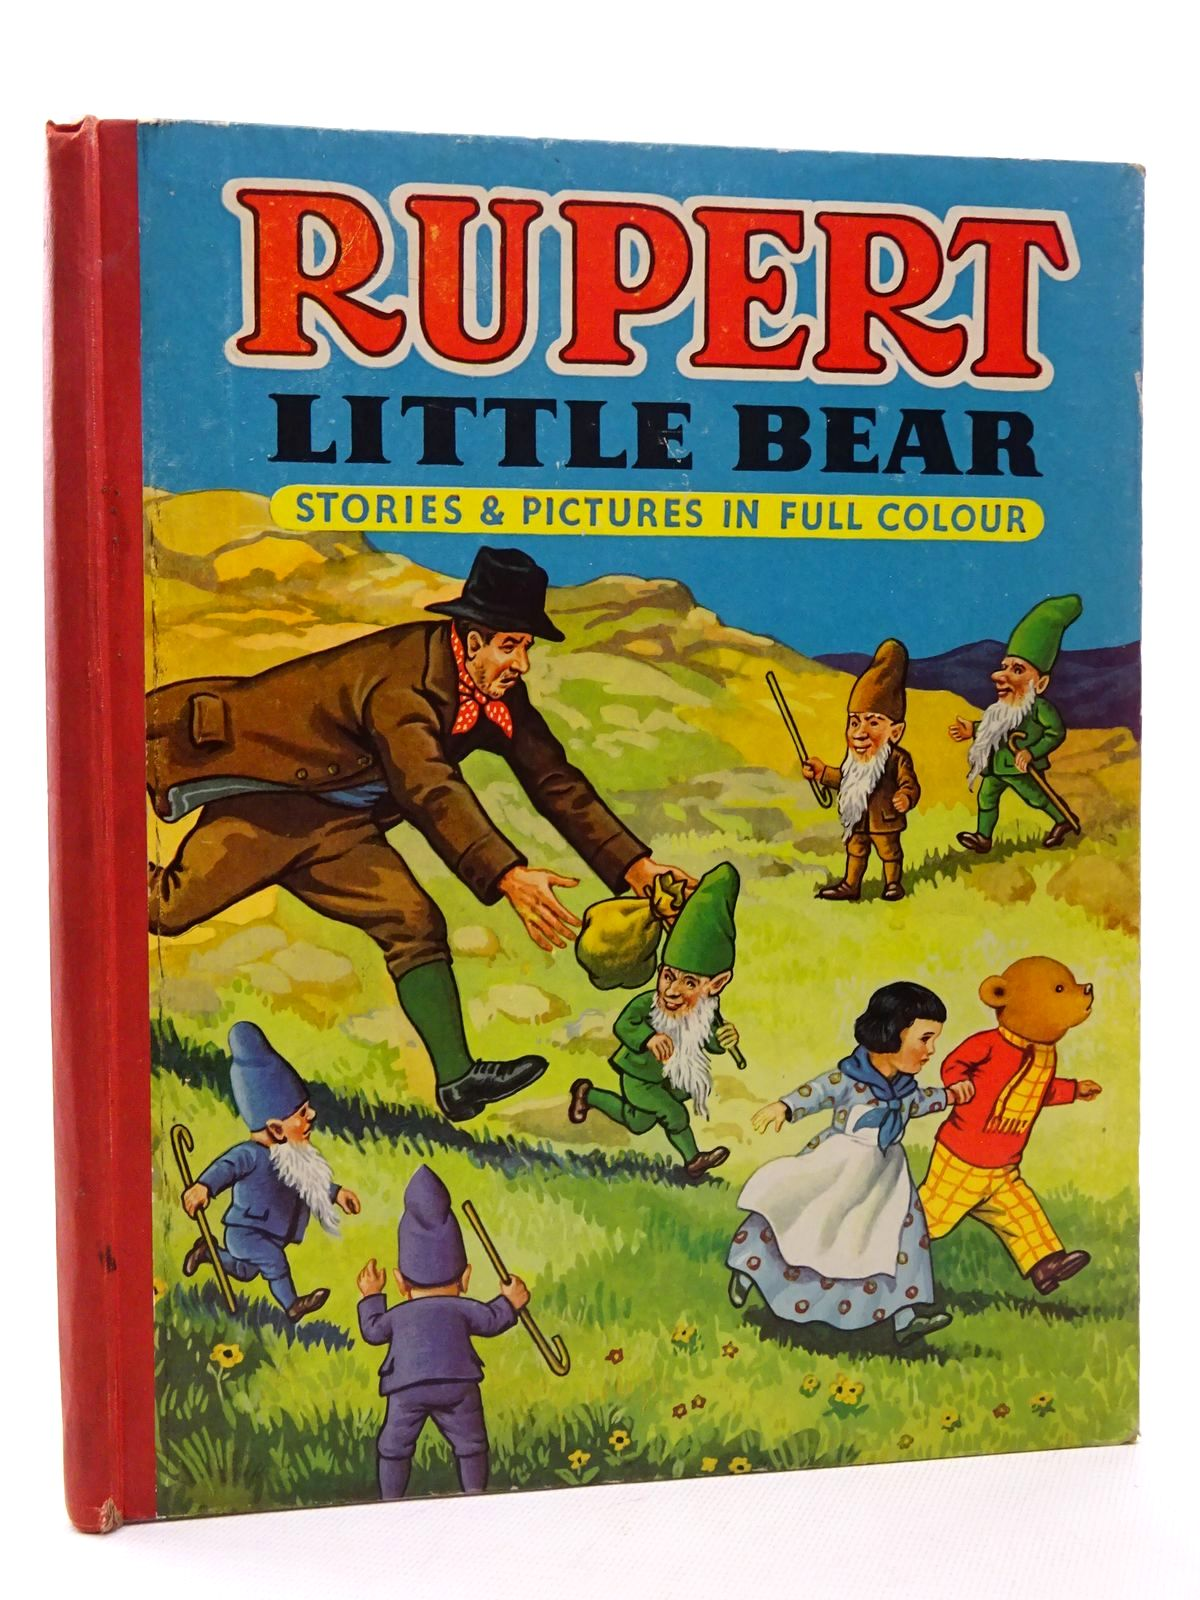 Photo of RUPERT LITTLE BEAR written by Tourtel, Mary published by Purnell (STOCK CODE: 1317216)  for sale by Stella & Rose's Books